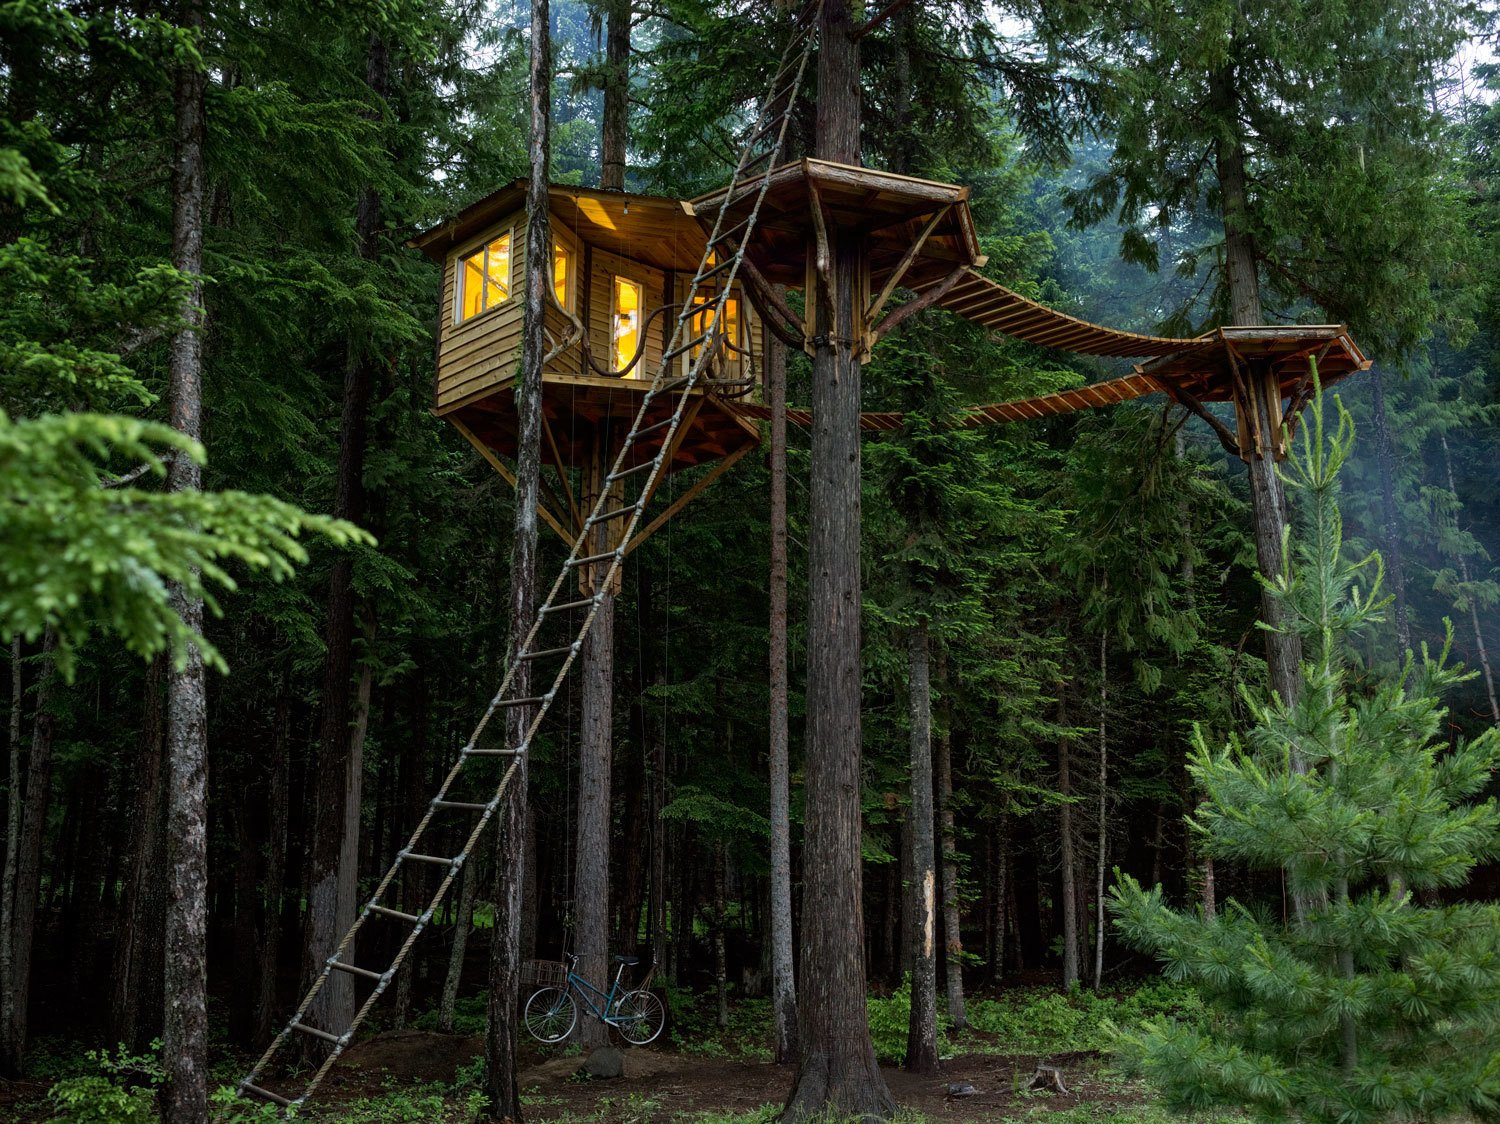 #smallspaces #offthegrid #treehouse #Sandpoint #Idaho #EthanSchussler #CabinPorn #cabin #quiet #landscape #outdoor #outside #exterior   Photo courtesy of: Noah Kalina  Modern Treehouses by Aileen Kwun